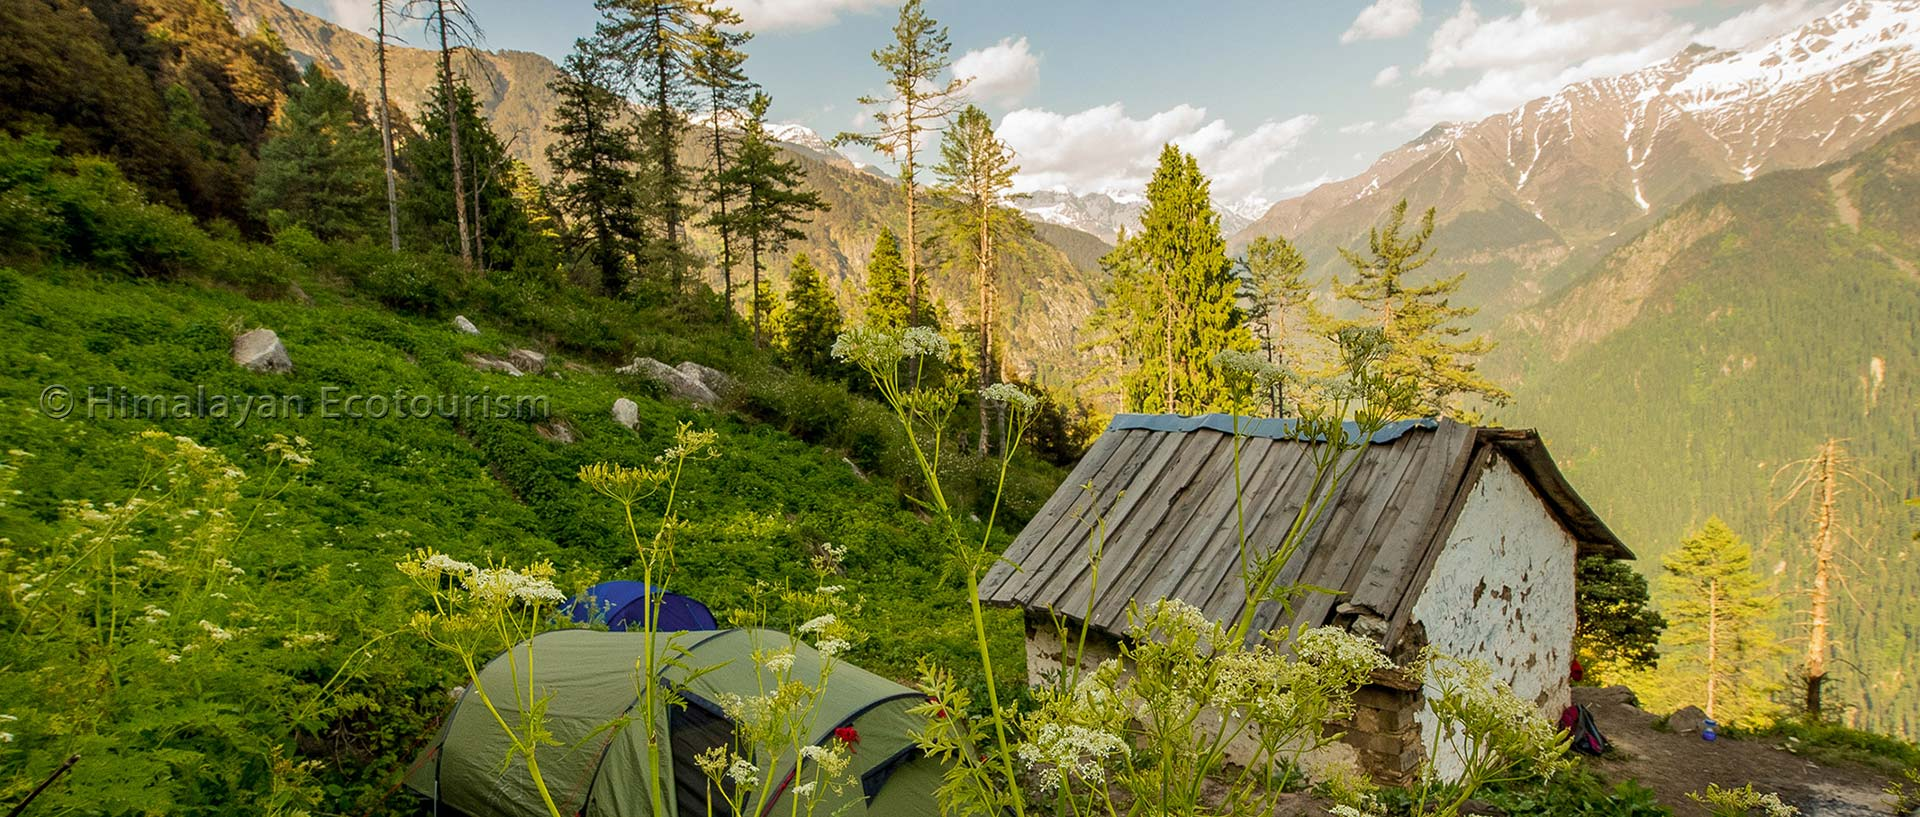 Shilt trek in the Great Himalayan National Park GHNP - The camp site